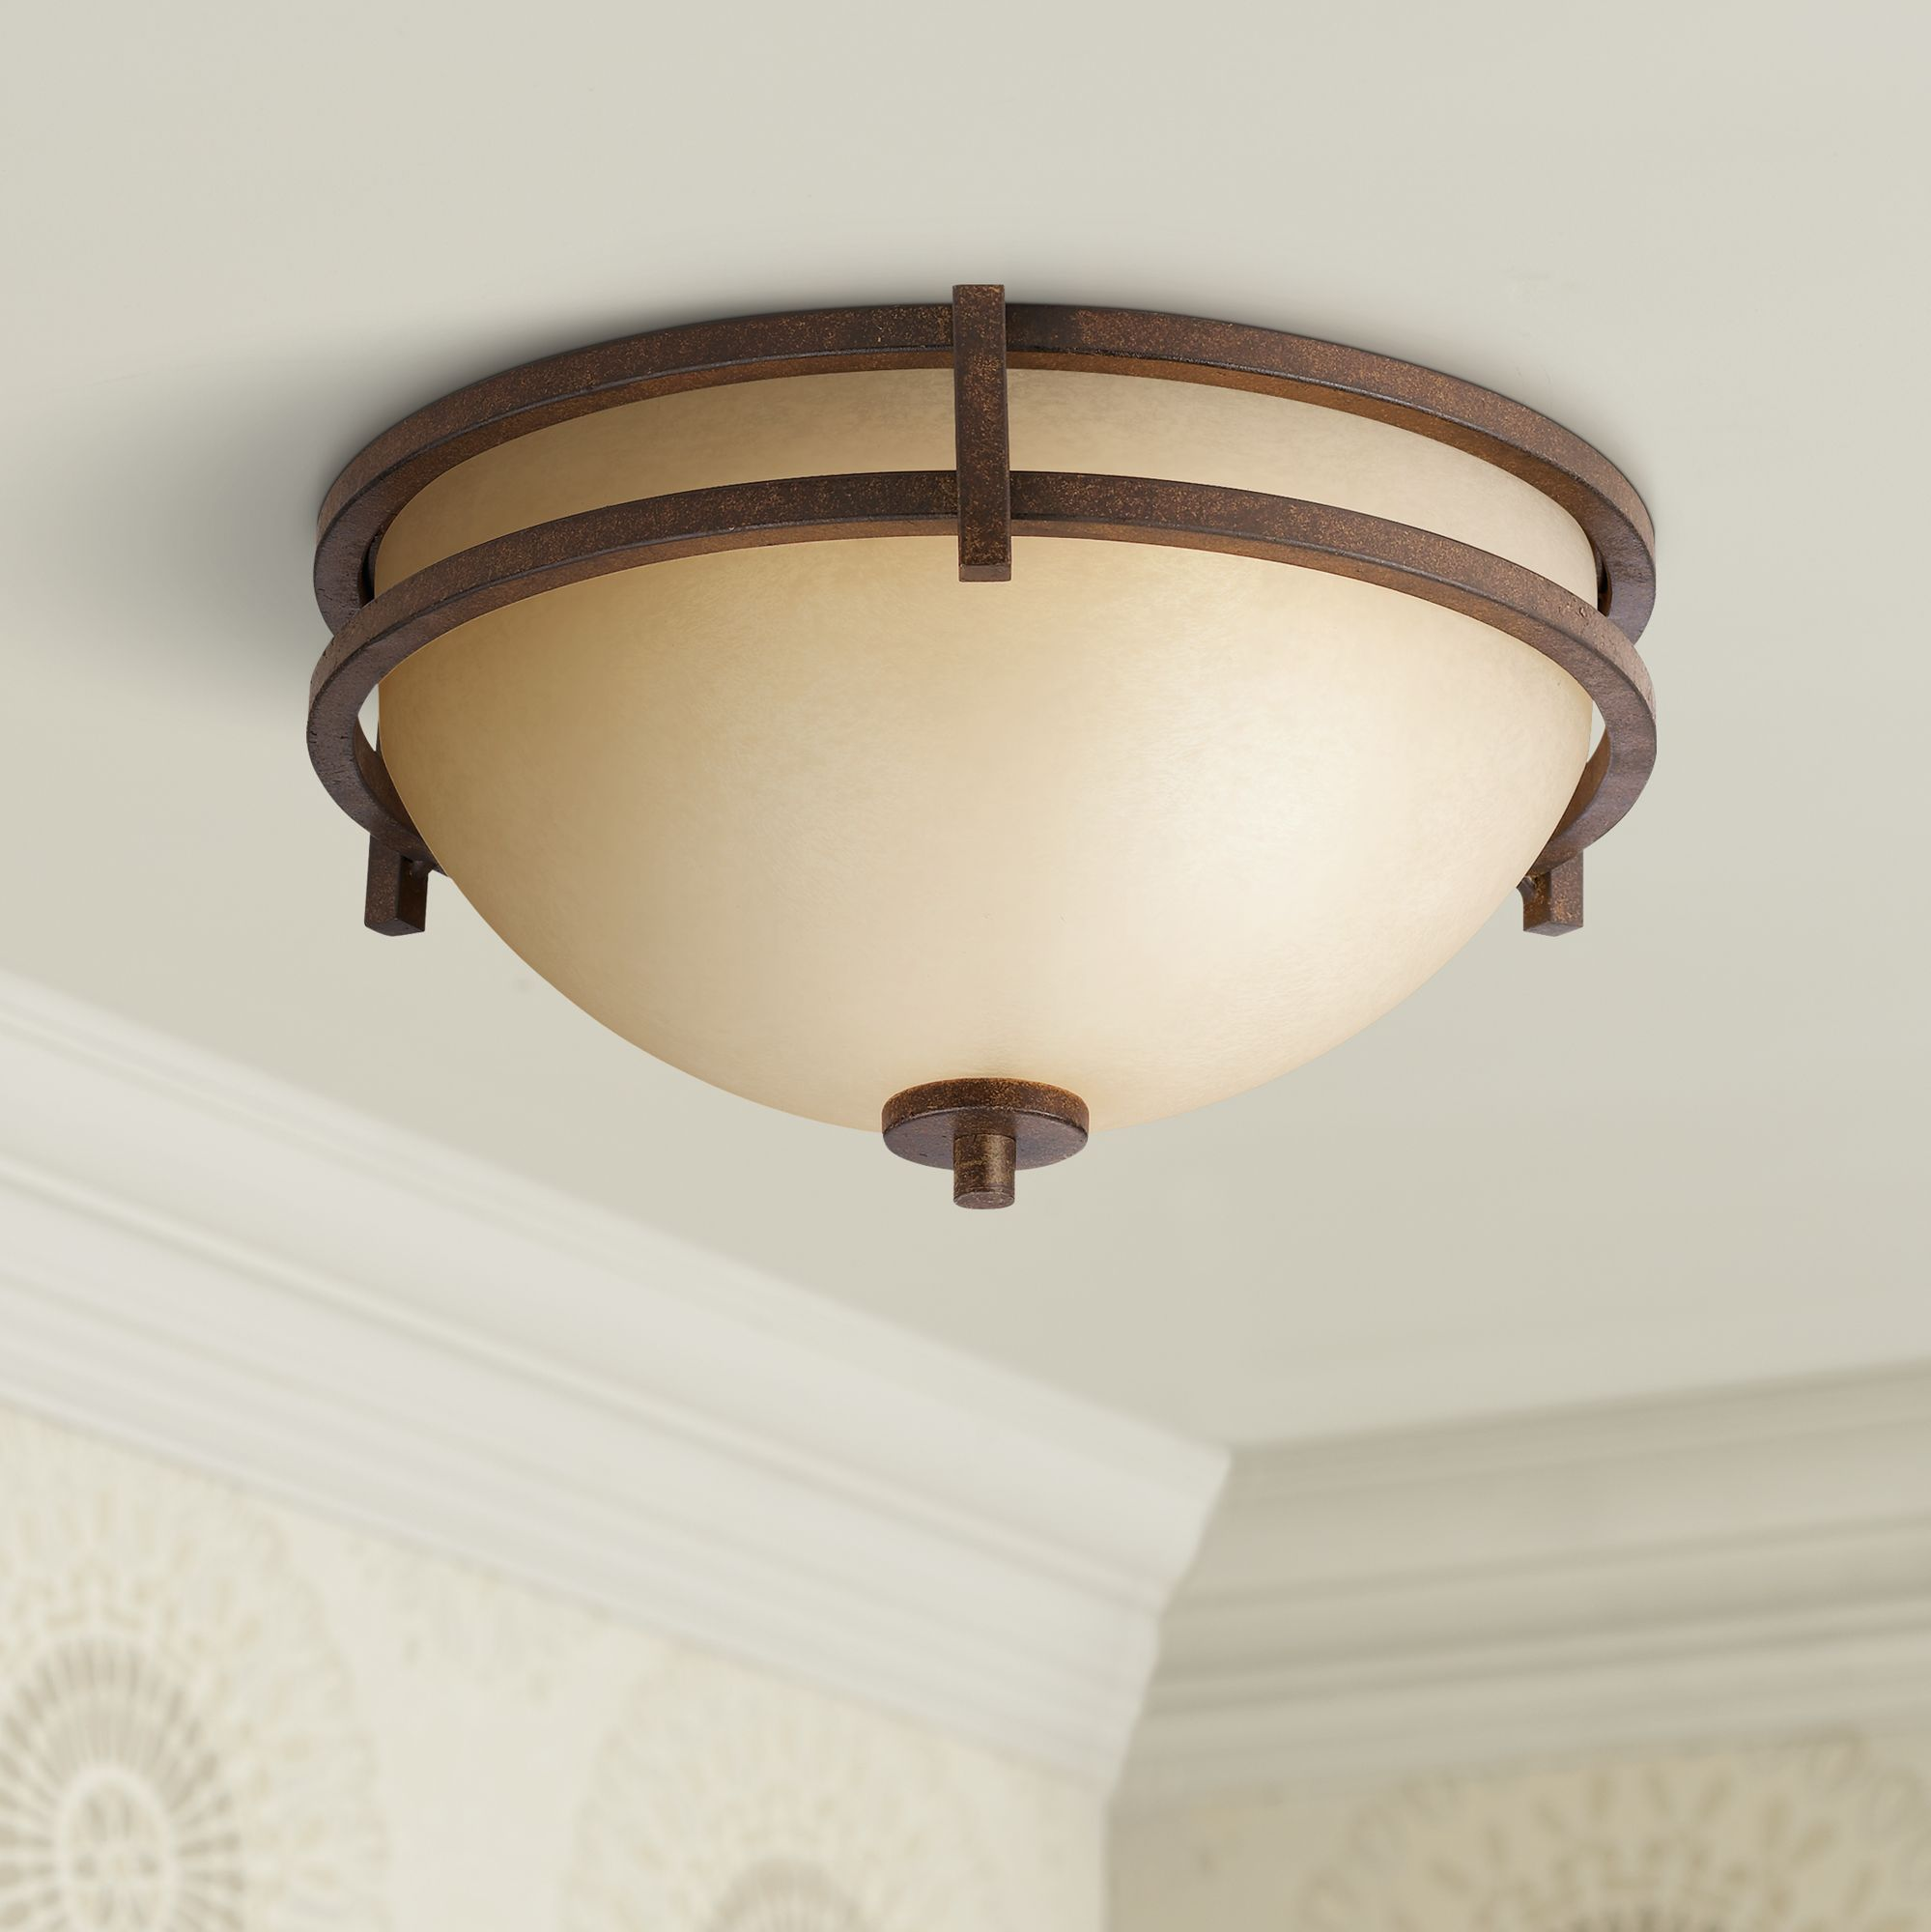 Asian ceiling light fixtures